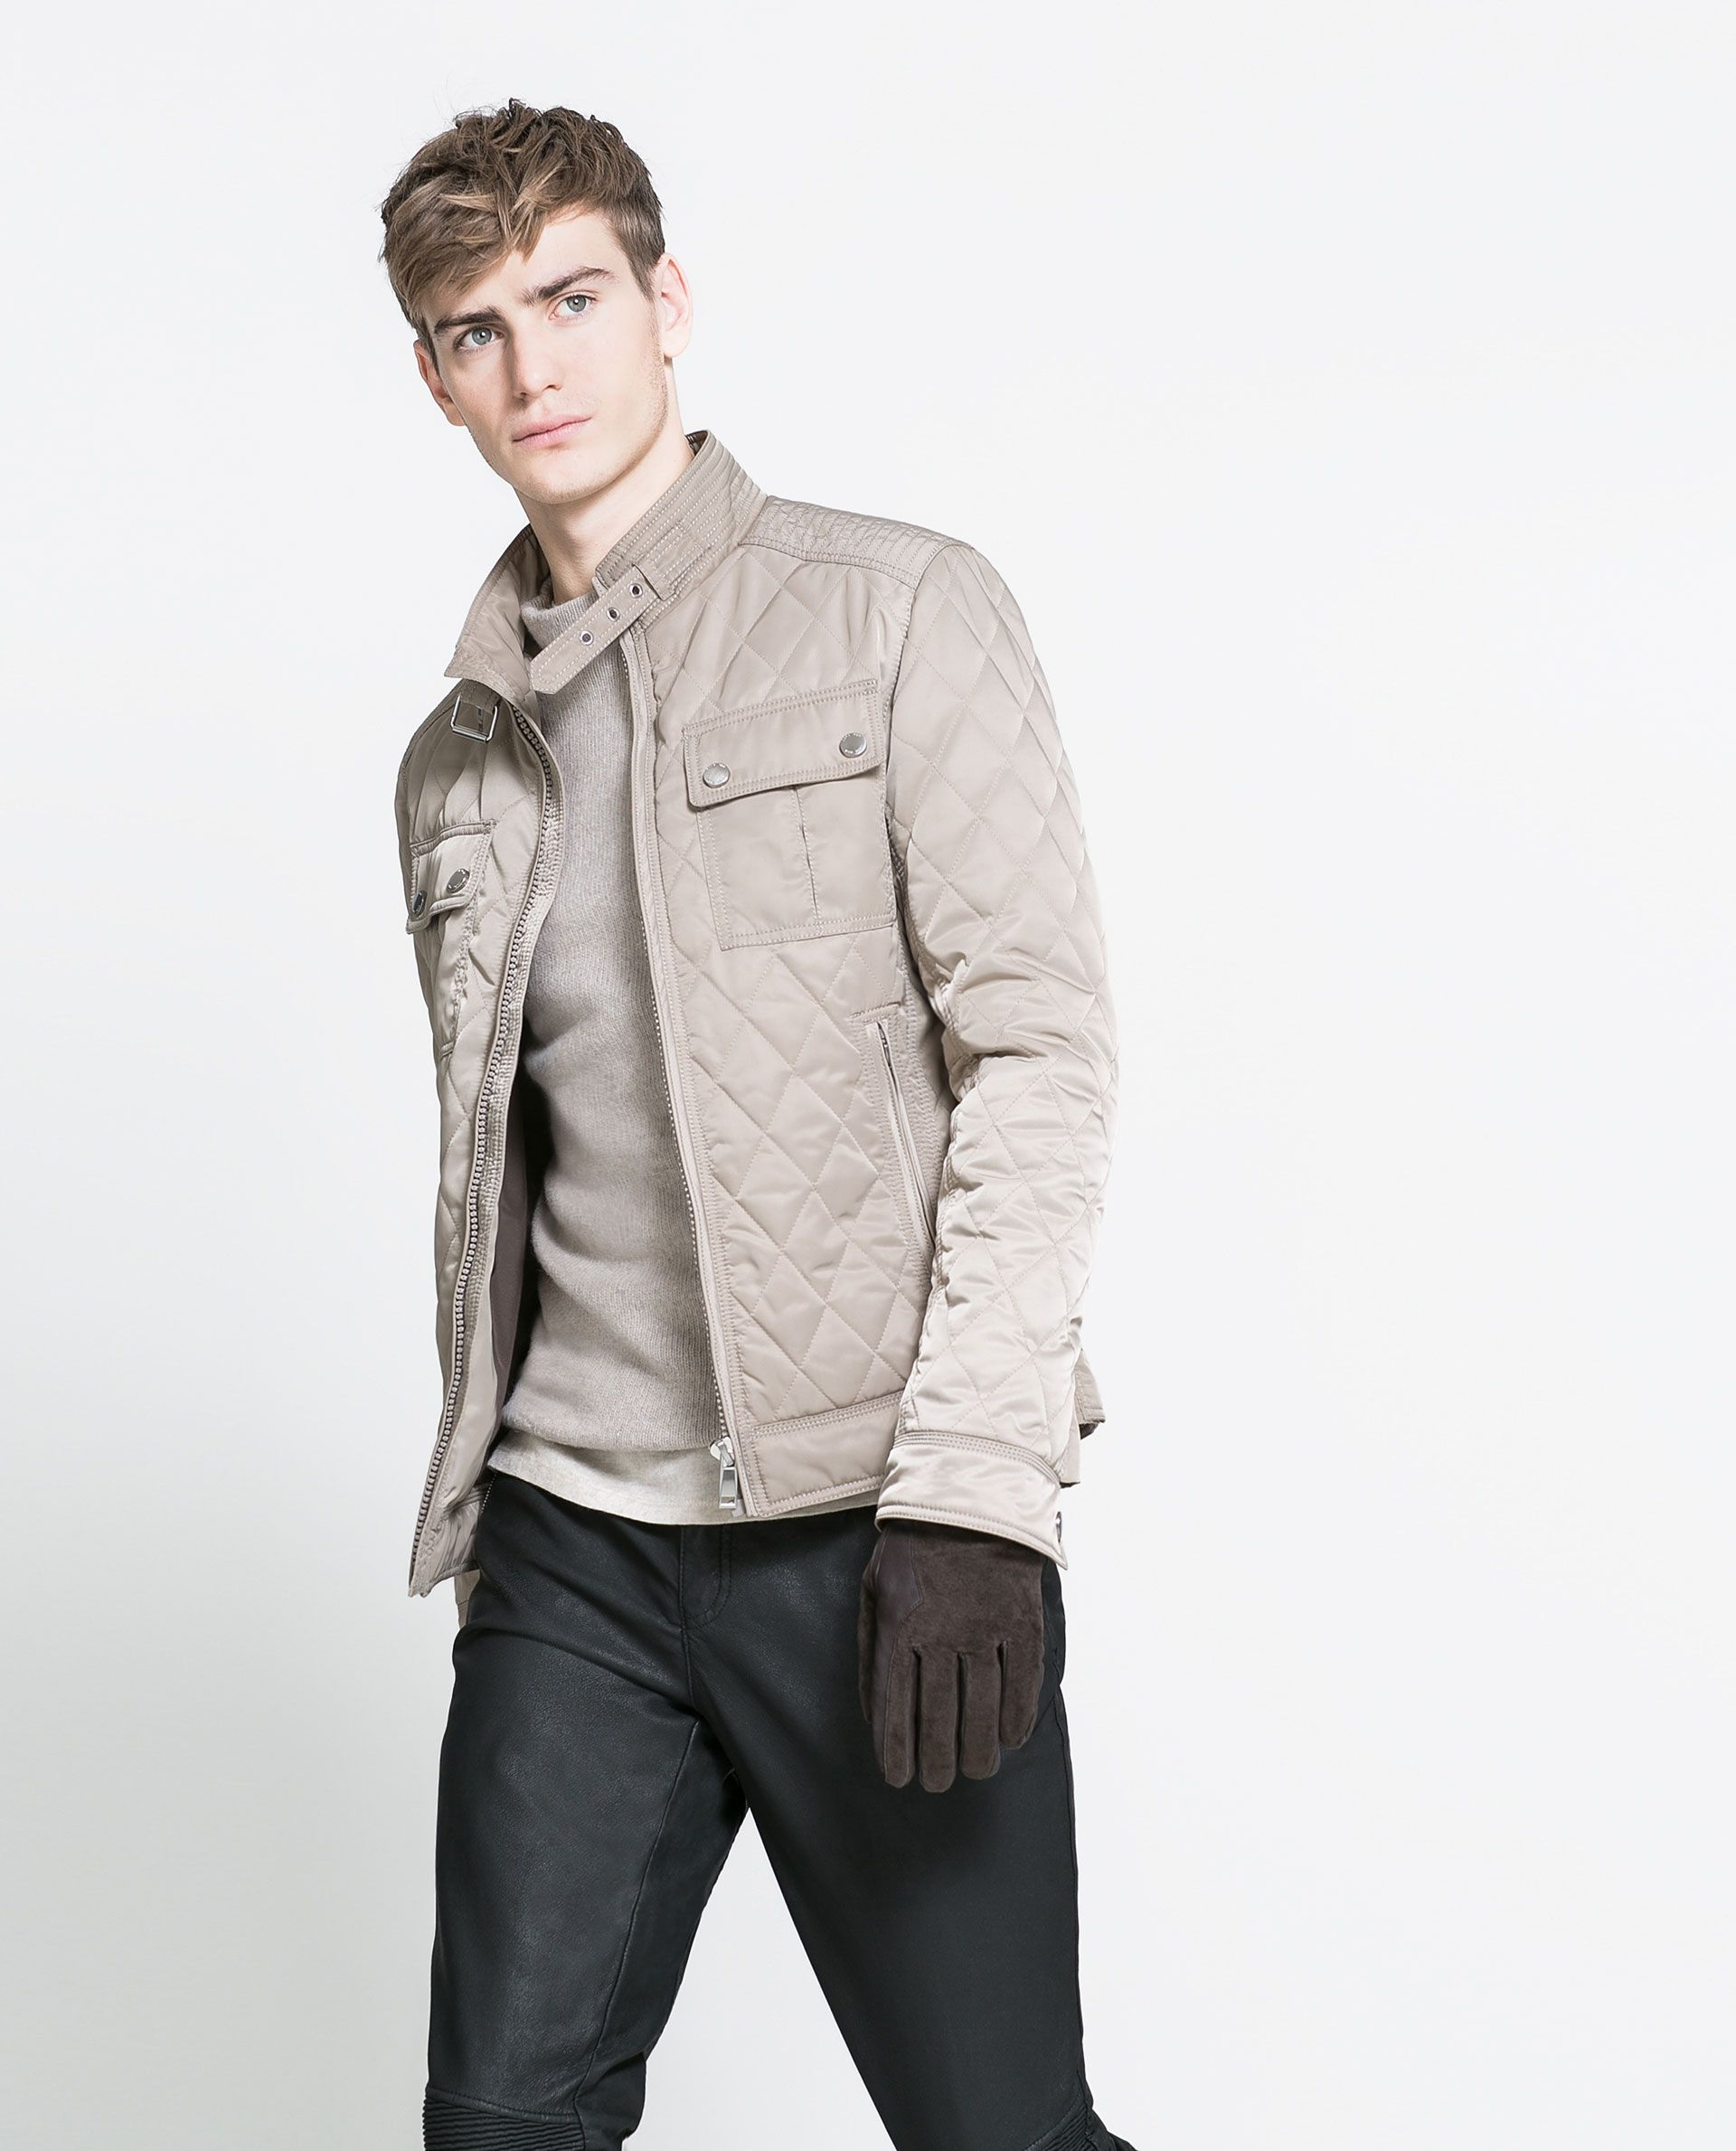 QUILTED JACKET Mens jackets casual, Casual wear for men